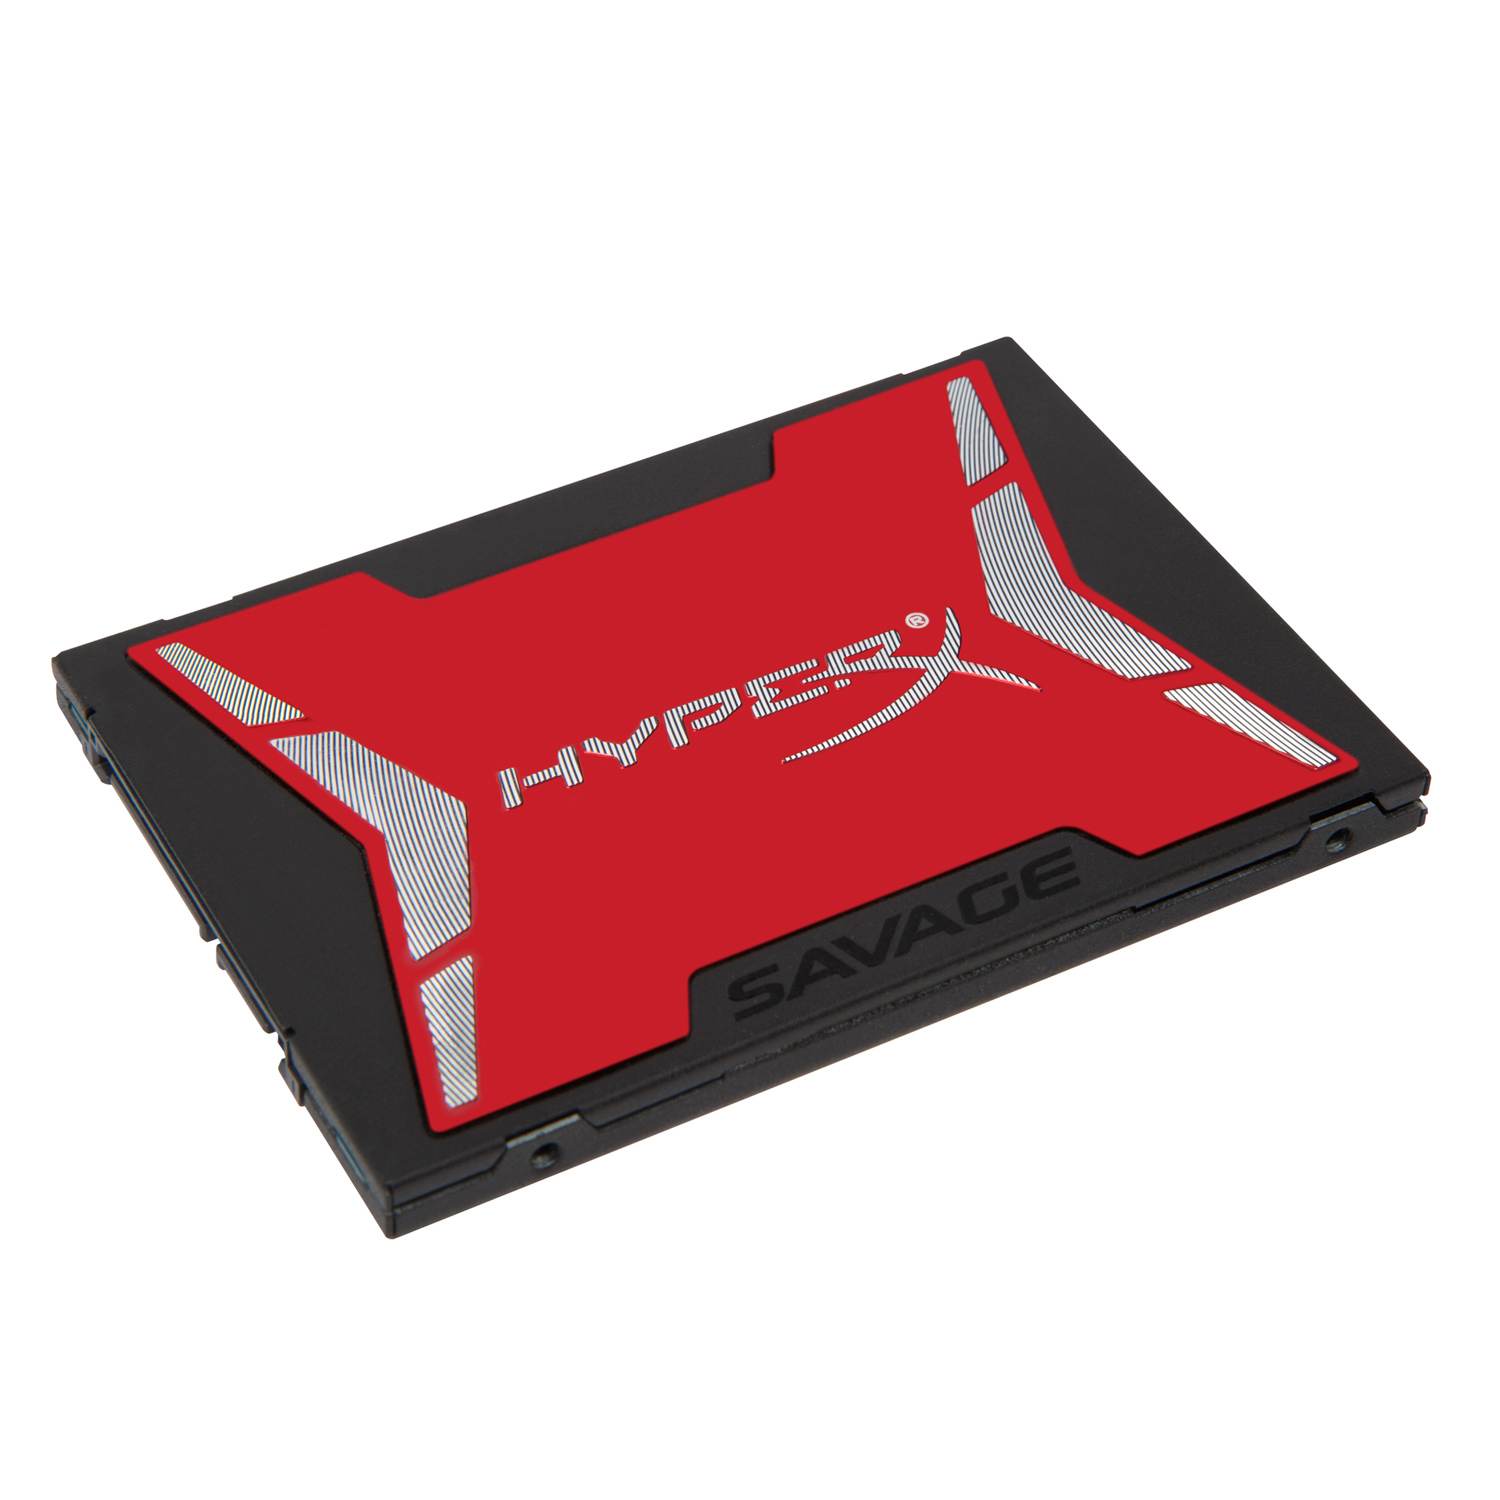 "Disque SSD HyperX Savage 480 Go SSD 480 Go 7mm 2.5"" Serial ATA 6Gb/s"